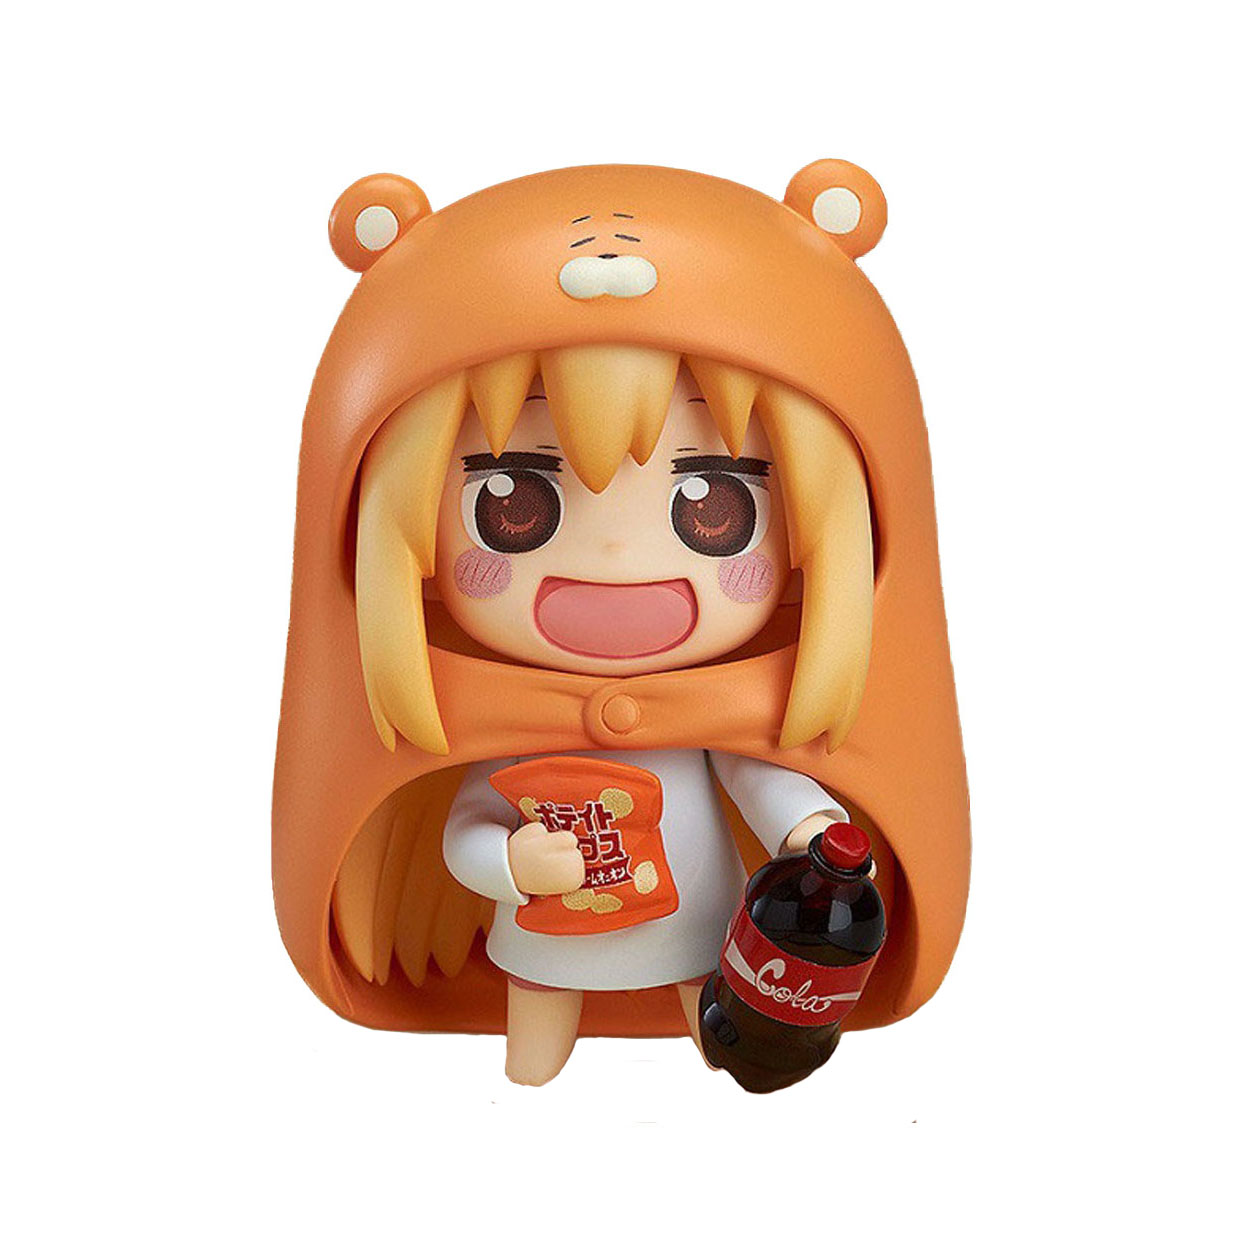 Chanycore GSC Nendoroid 524# Japanese Anime Figure U M R Cute Nendoroid Doma Umaru PVC Action figure Model collection Toy 10cm free shipping 4 nendoroid anime himouto umaru chan doma umaru boxed 10cm pvc acton figure collection model doll toy gift 524